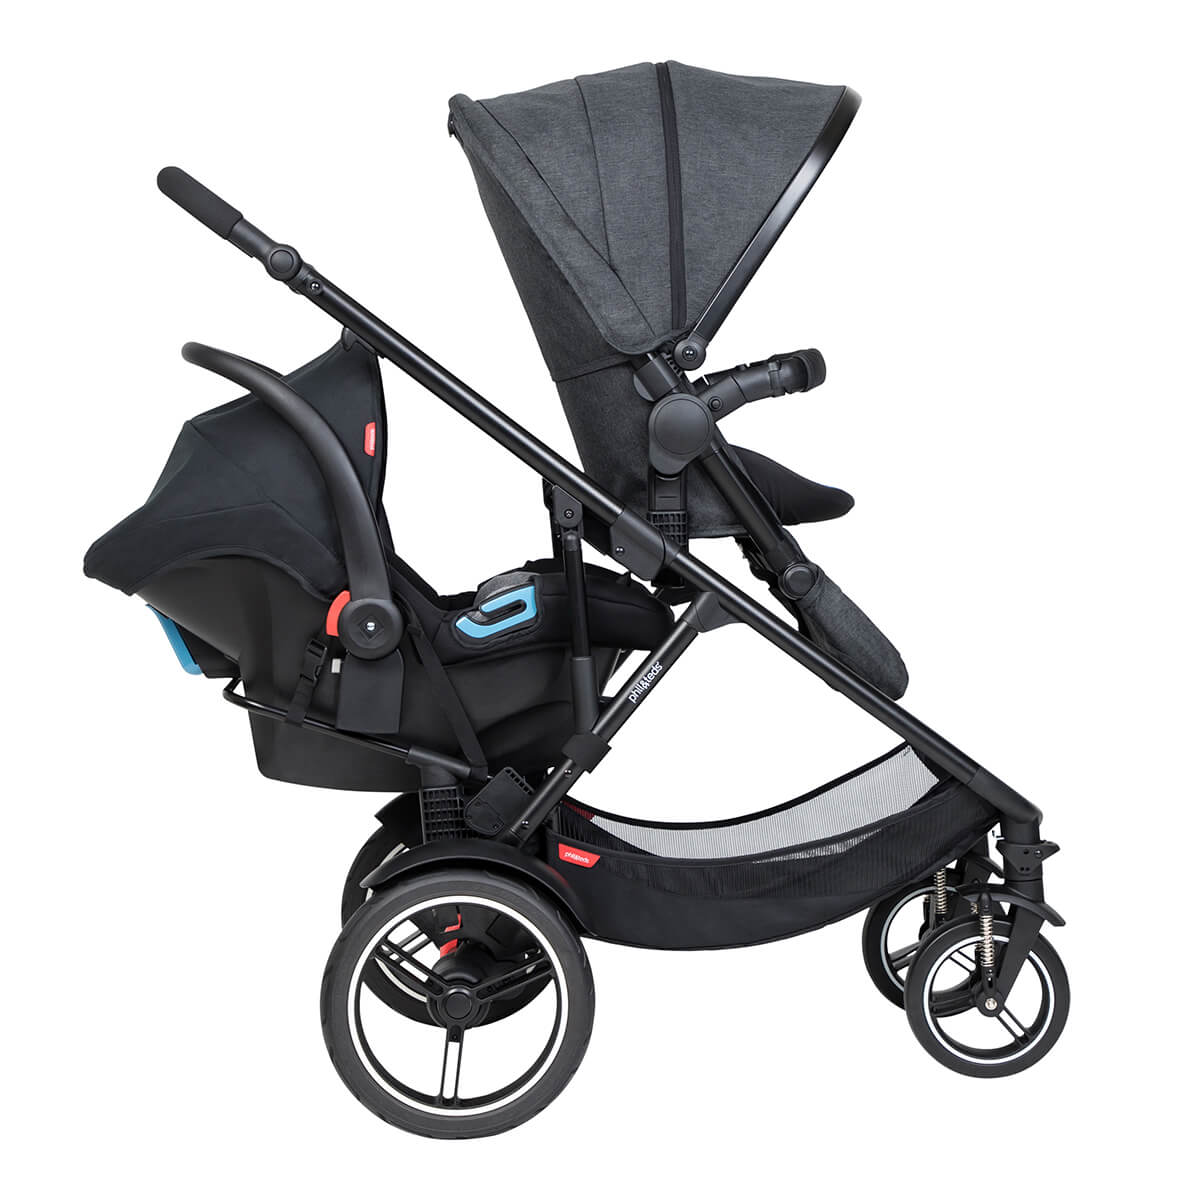 https://cdn.accentuate.io/4546158821481/19119322726505/philteds-voyager-buggy-in-forward-facing-mode-with-travel-system-in-the-rear-v1625778595762.jpg?1200x1200